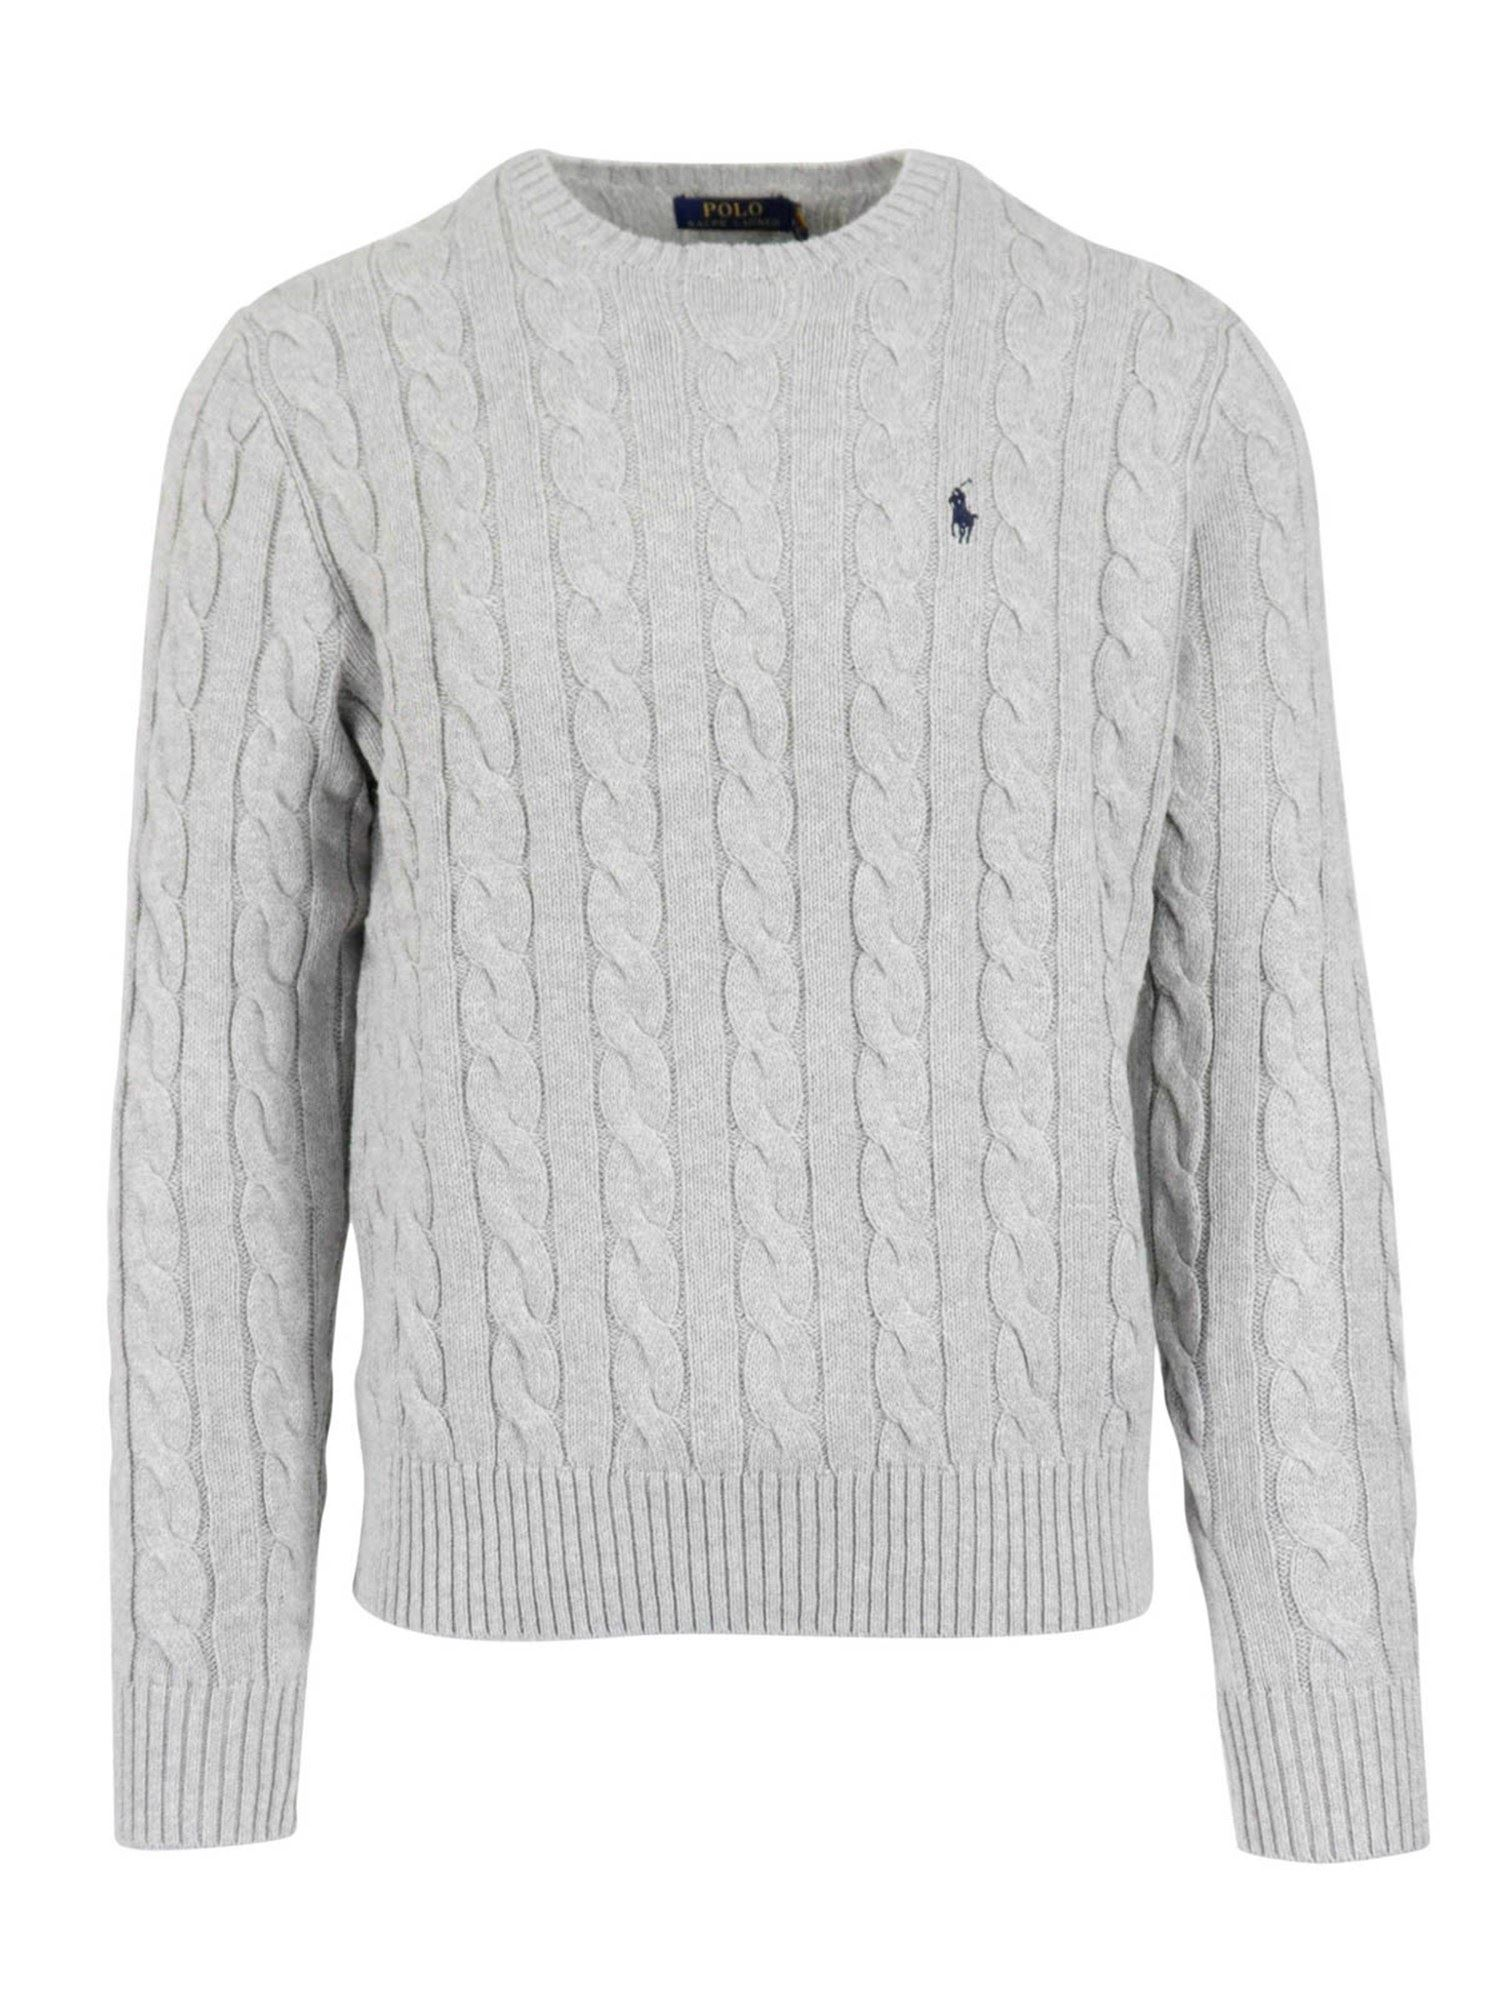 POLO RALPH LAUREN POLO RALPH LAUREN CABLE KNIT SWEATER